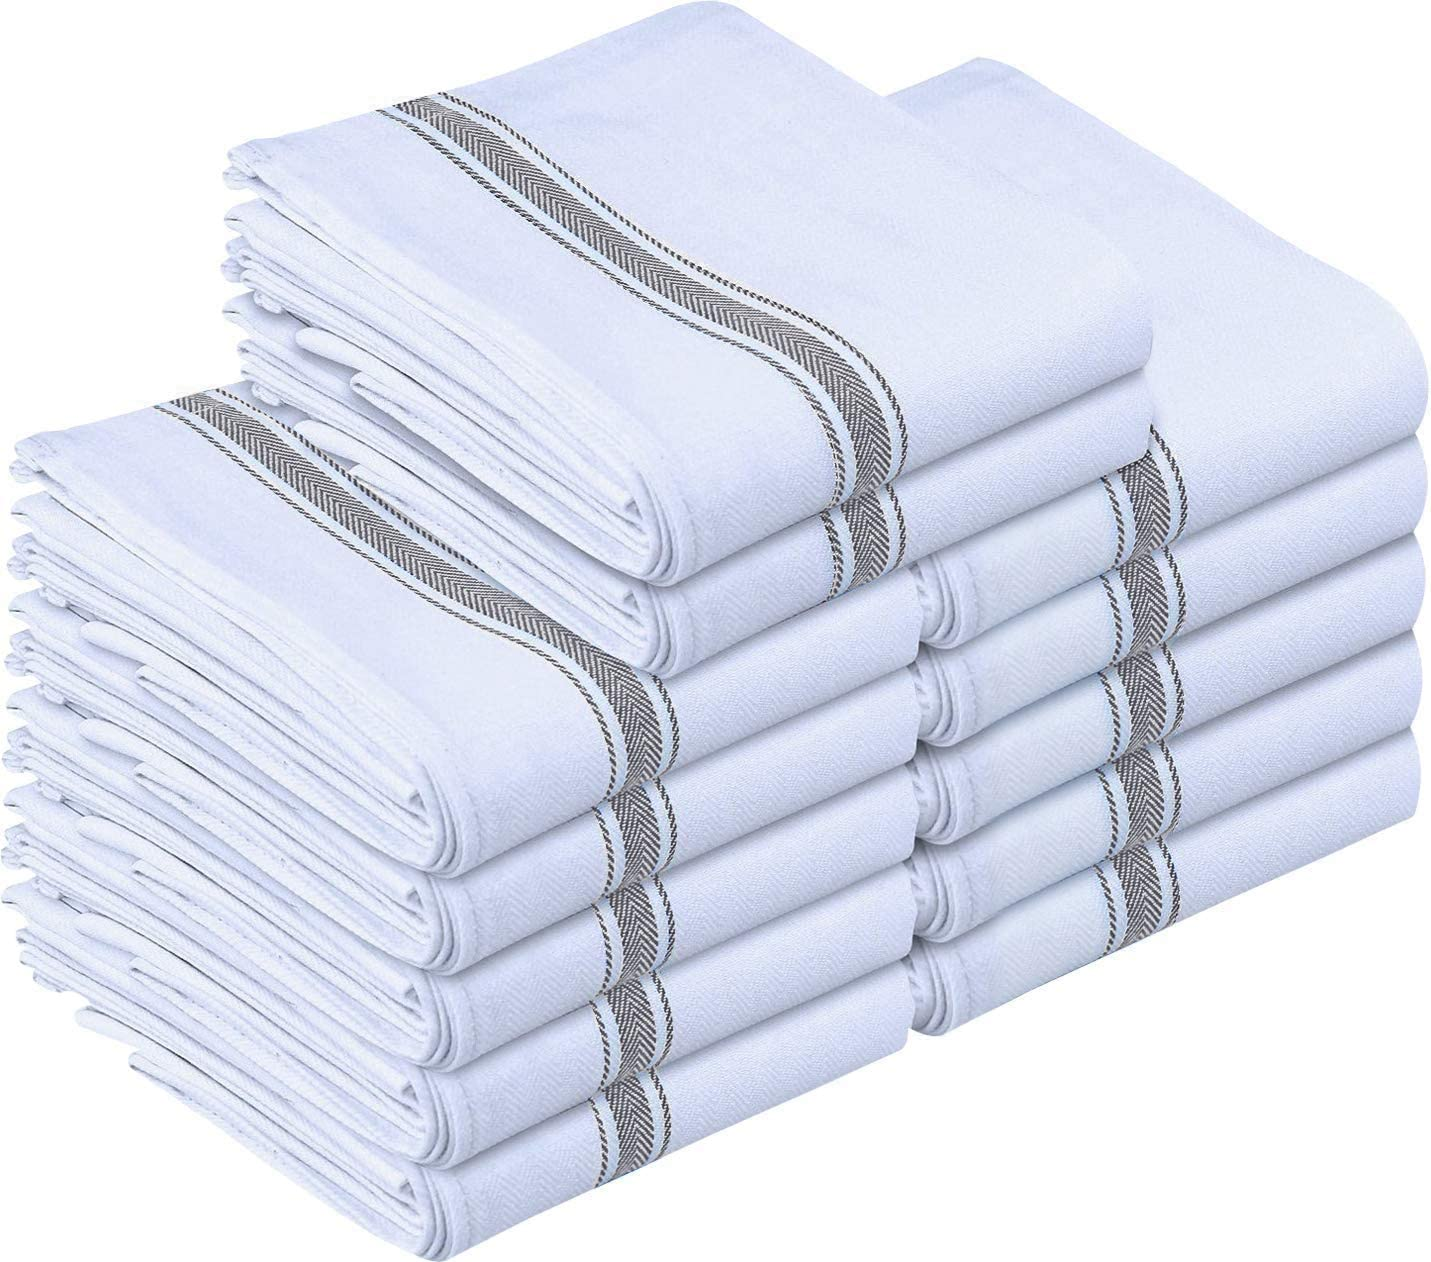 Utopia Towels 12 Pack Dish Towels - Resuable Kitchen Towels -15 x 25 Inches Ultra Soft Cotton Dish Cloths - Super Absorbent Cleaning Cloths, Grey